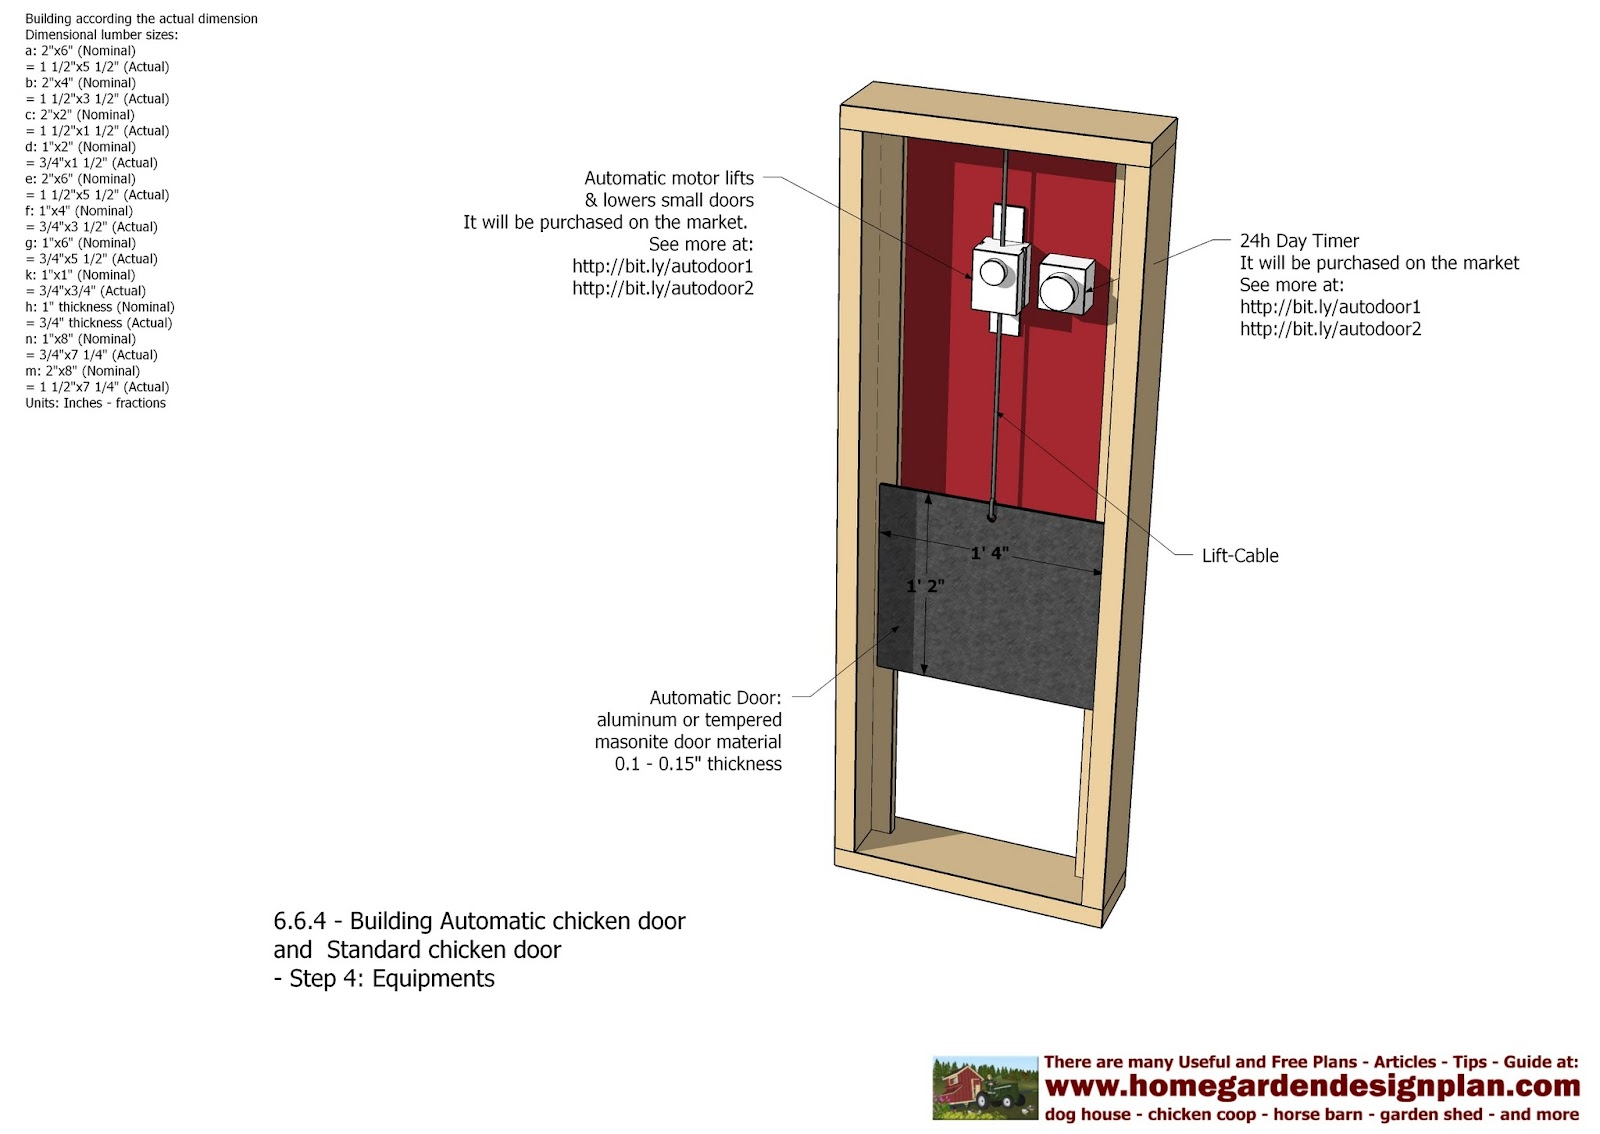 Coop guide next topic automatic door for chicken coop for D20 chicken coop motor door